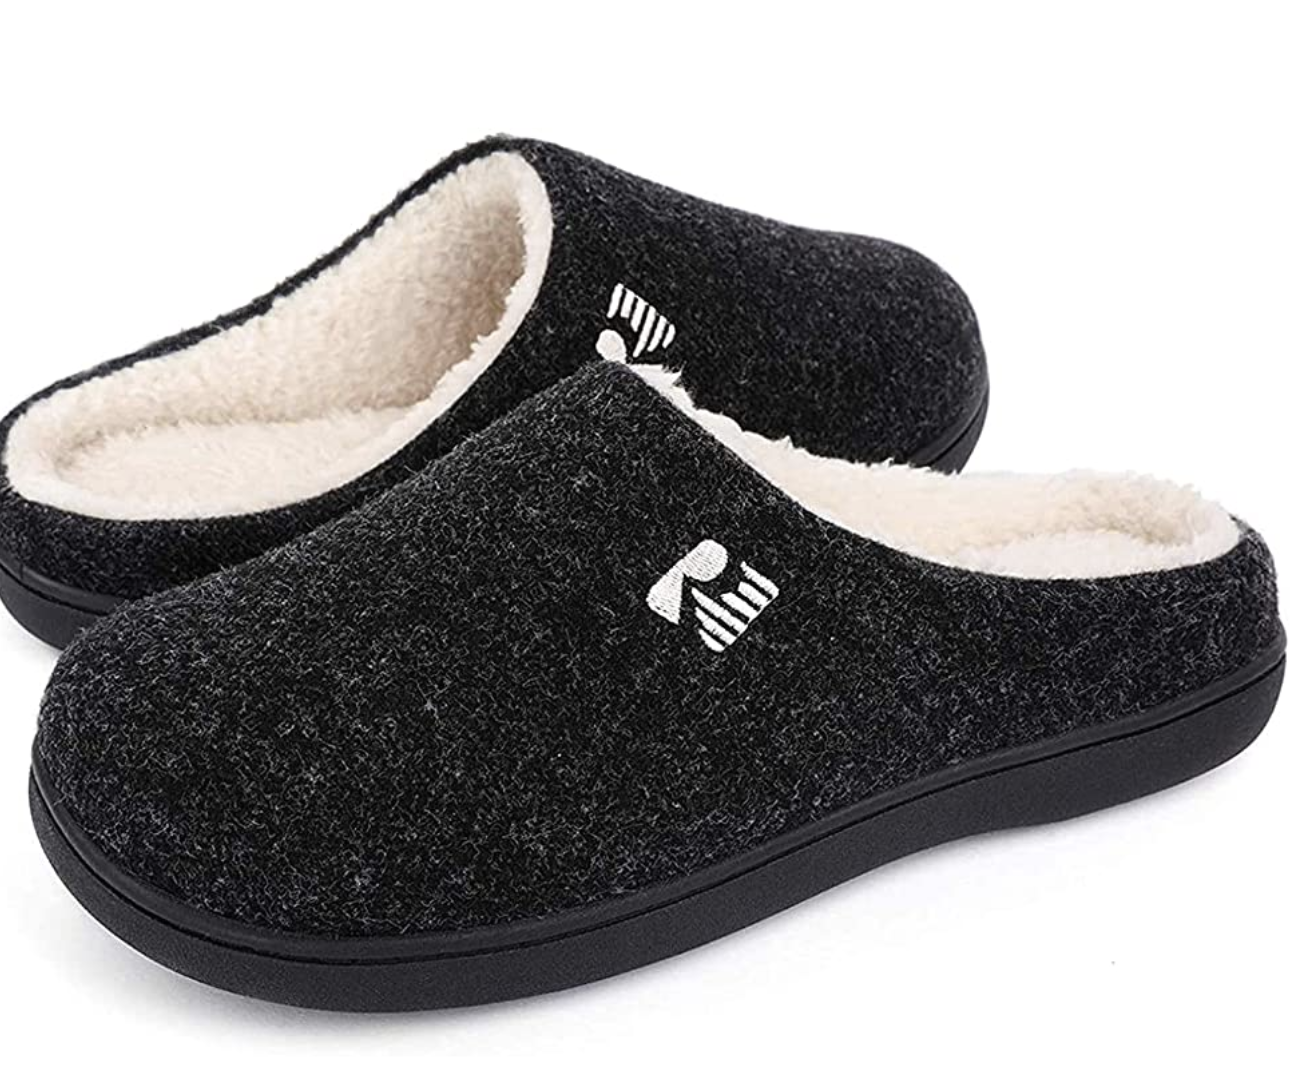 Gray slip-on slippers with white interior lining